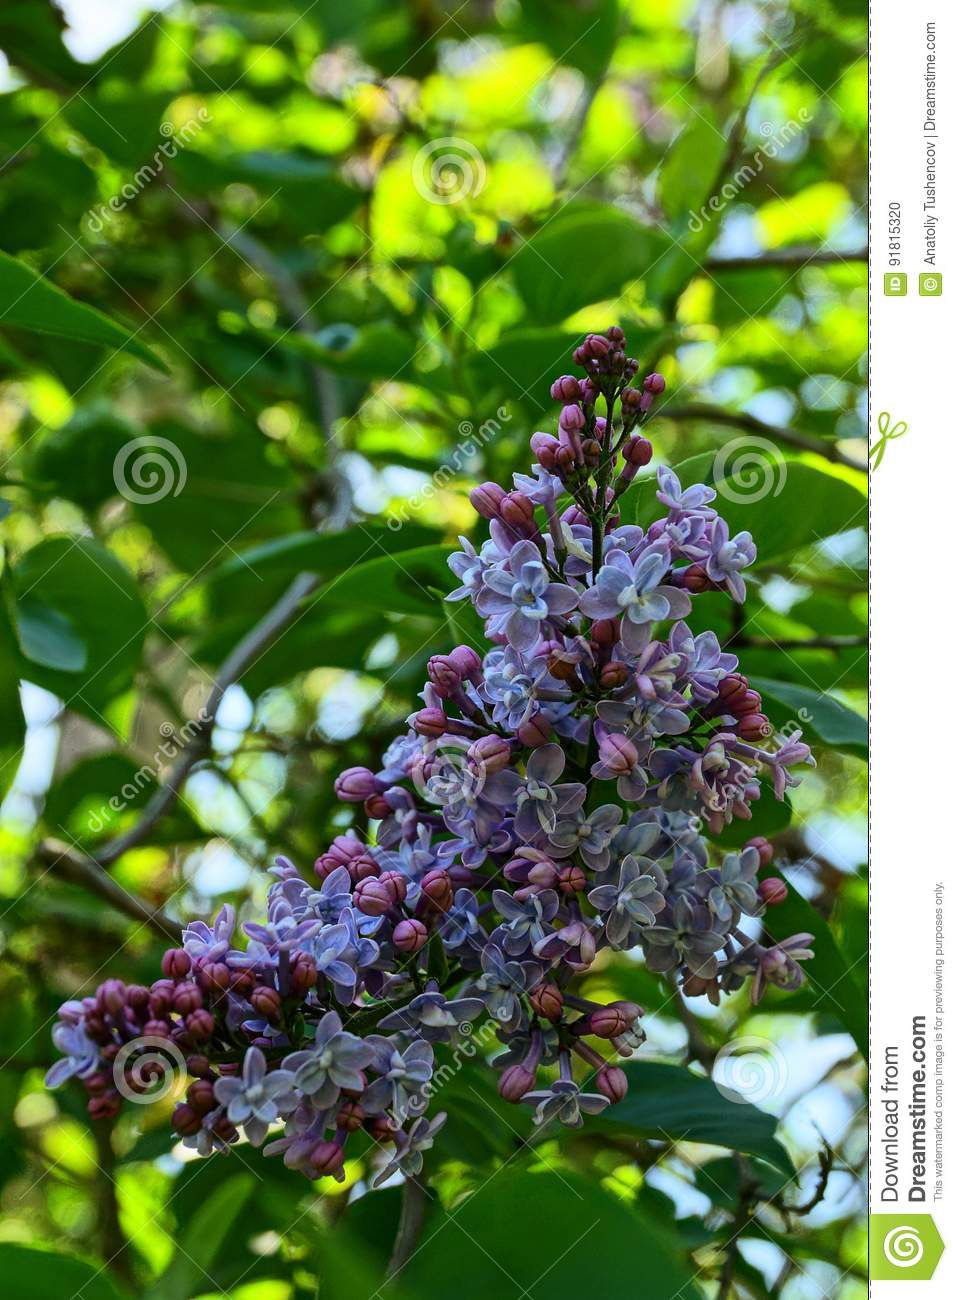 A Branch Of A Lilac Bush Blooming With Small Flowers Stock Photo